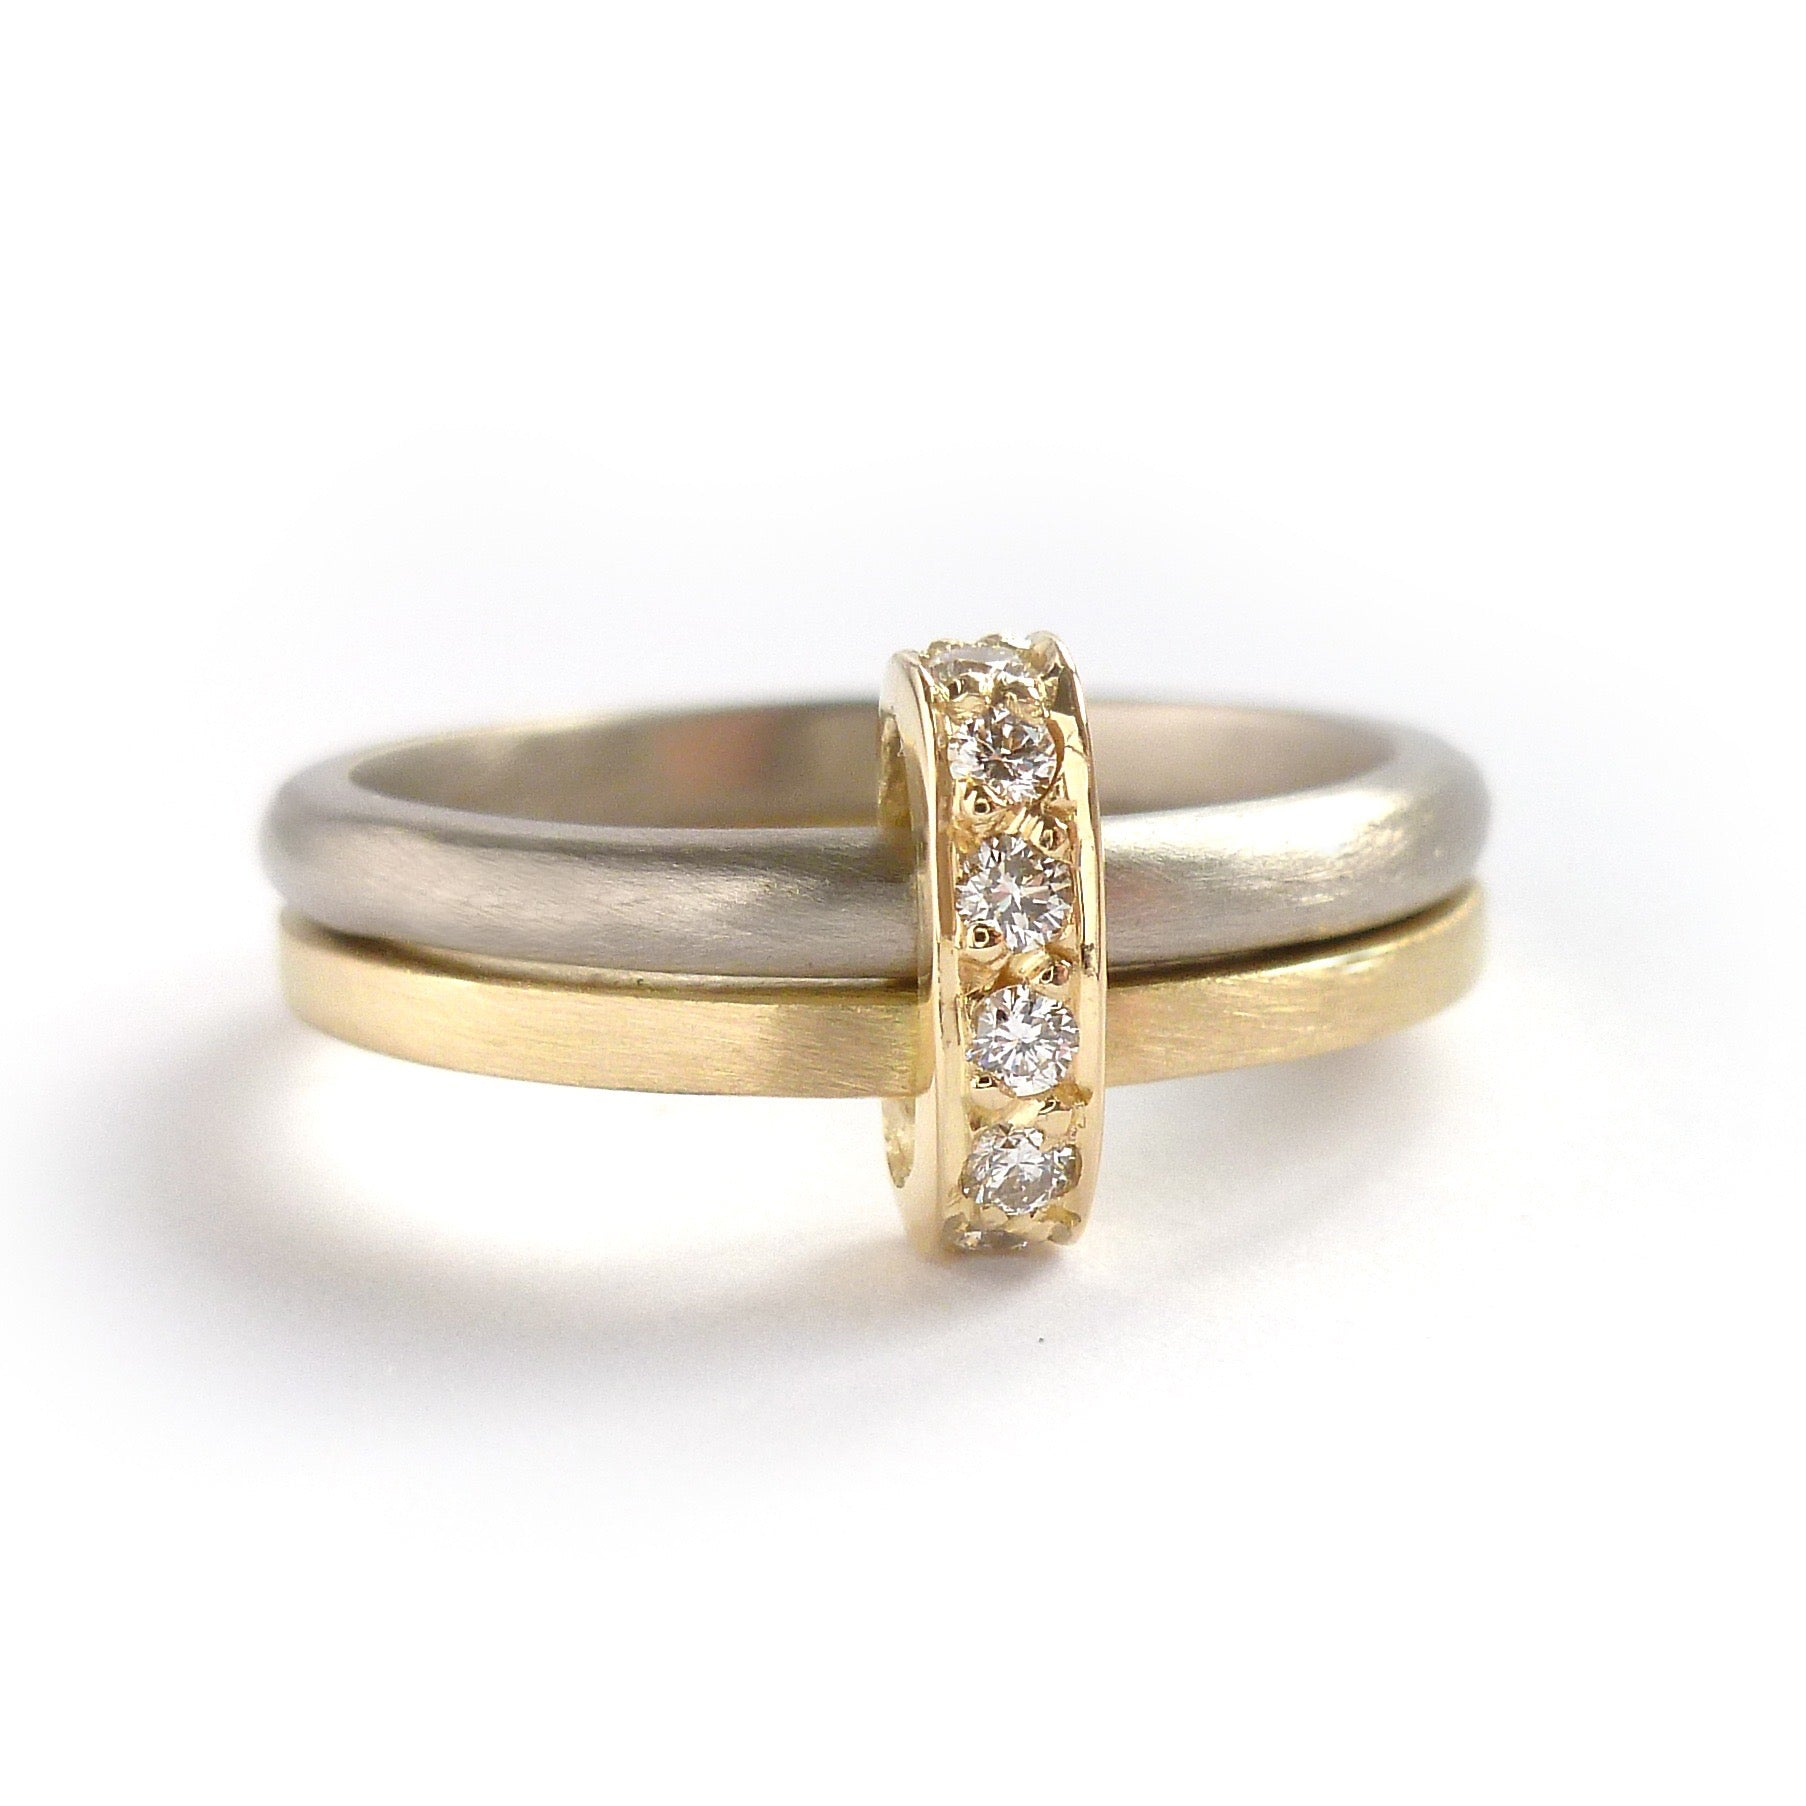 Modern and bespoke two band two tone ring with pave set diamonds. Modern, unique two band ring joined together with diamonds. An alternative eternity or wedding ring. Multi band ring or interlocking ring, sometimes called double band ring too.